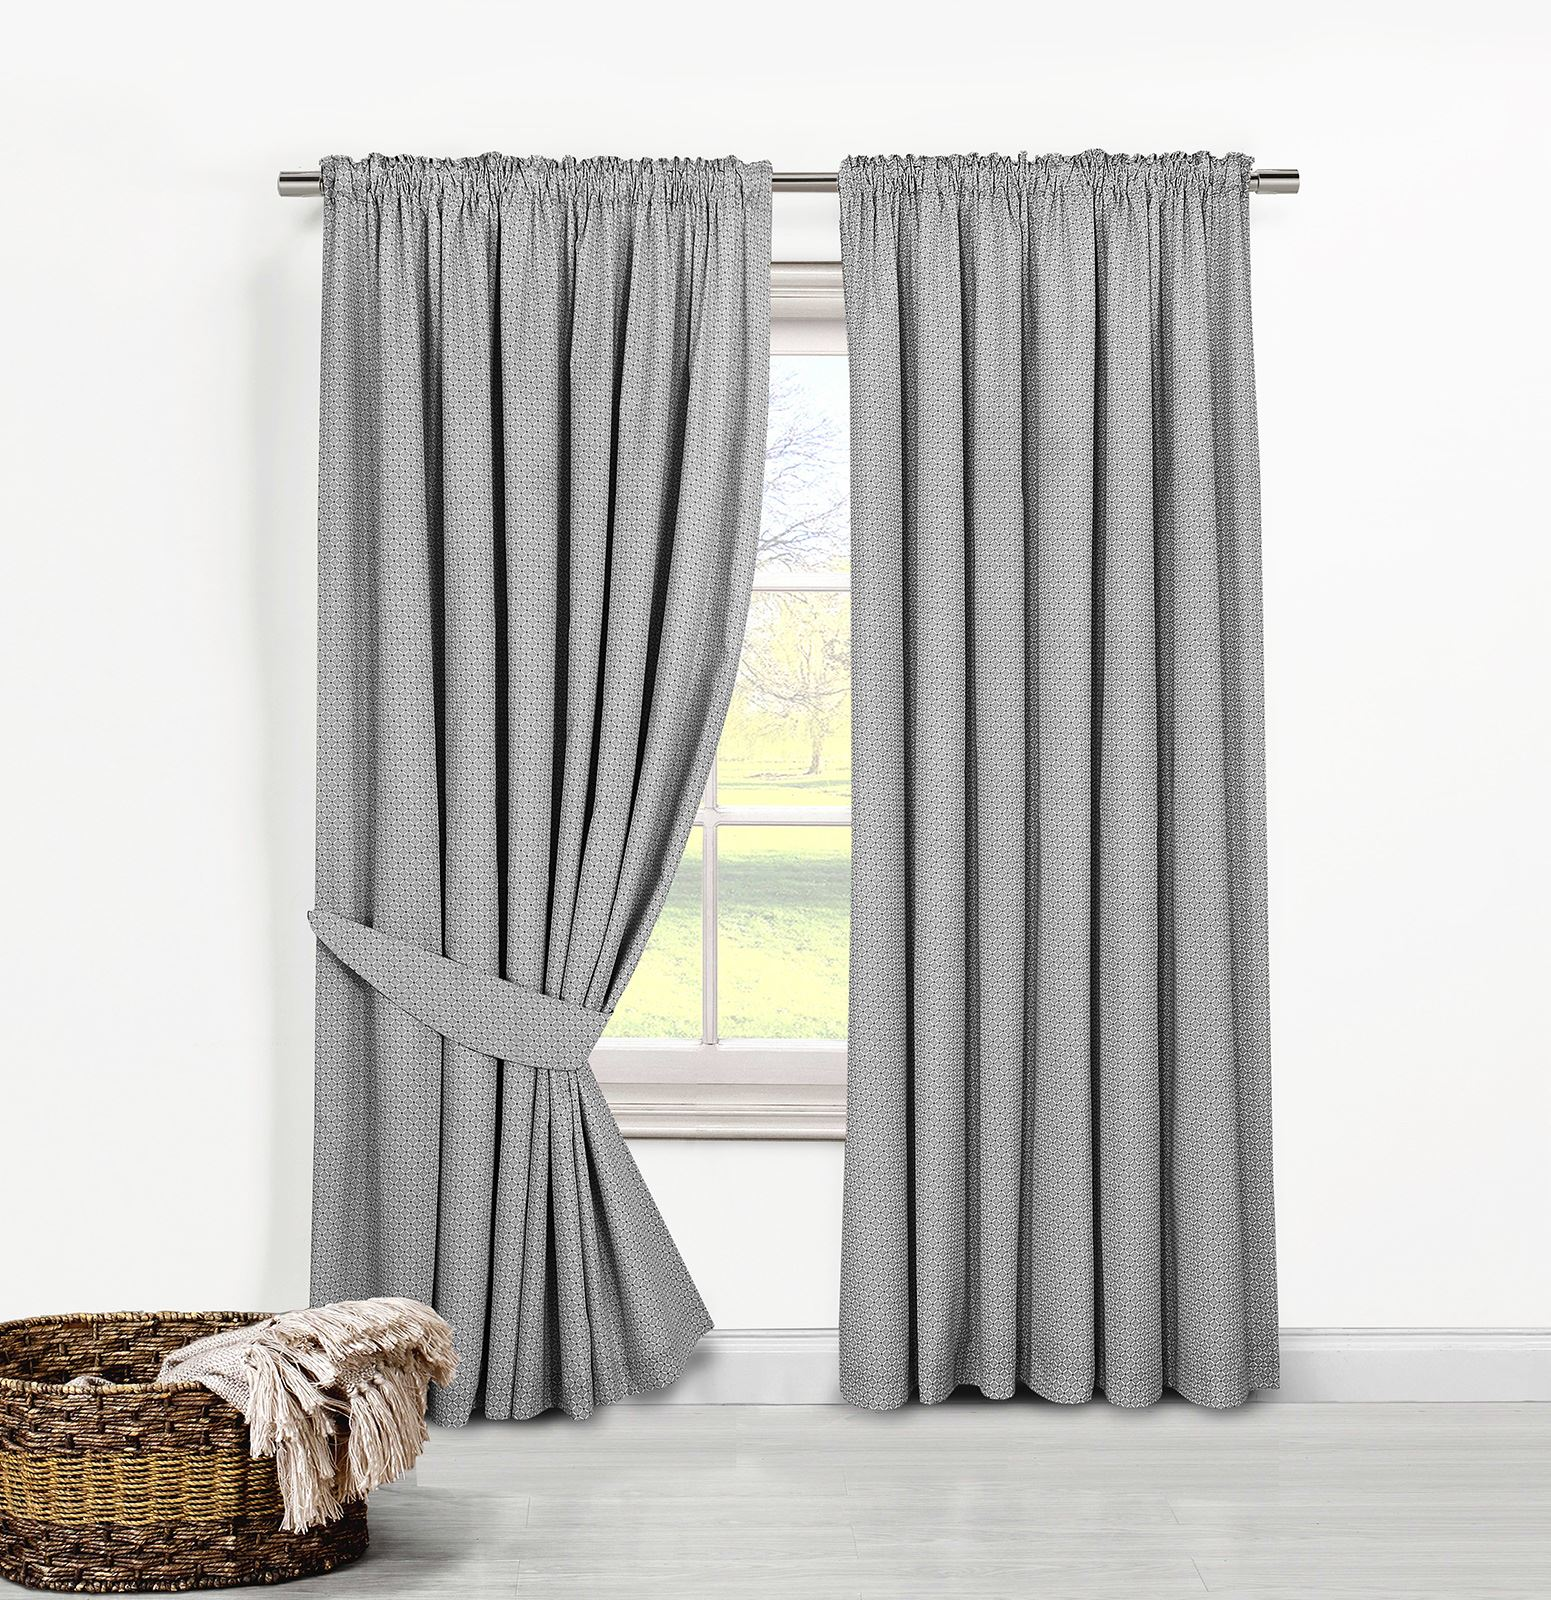 Geometric Curtain PAIR Cotton Blend Pencil Pleated Lined